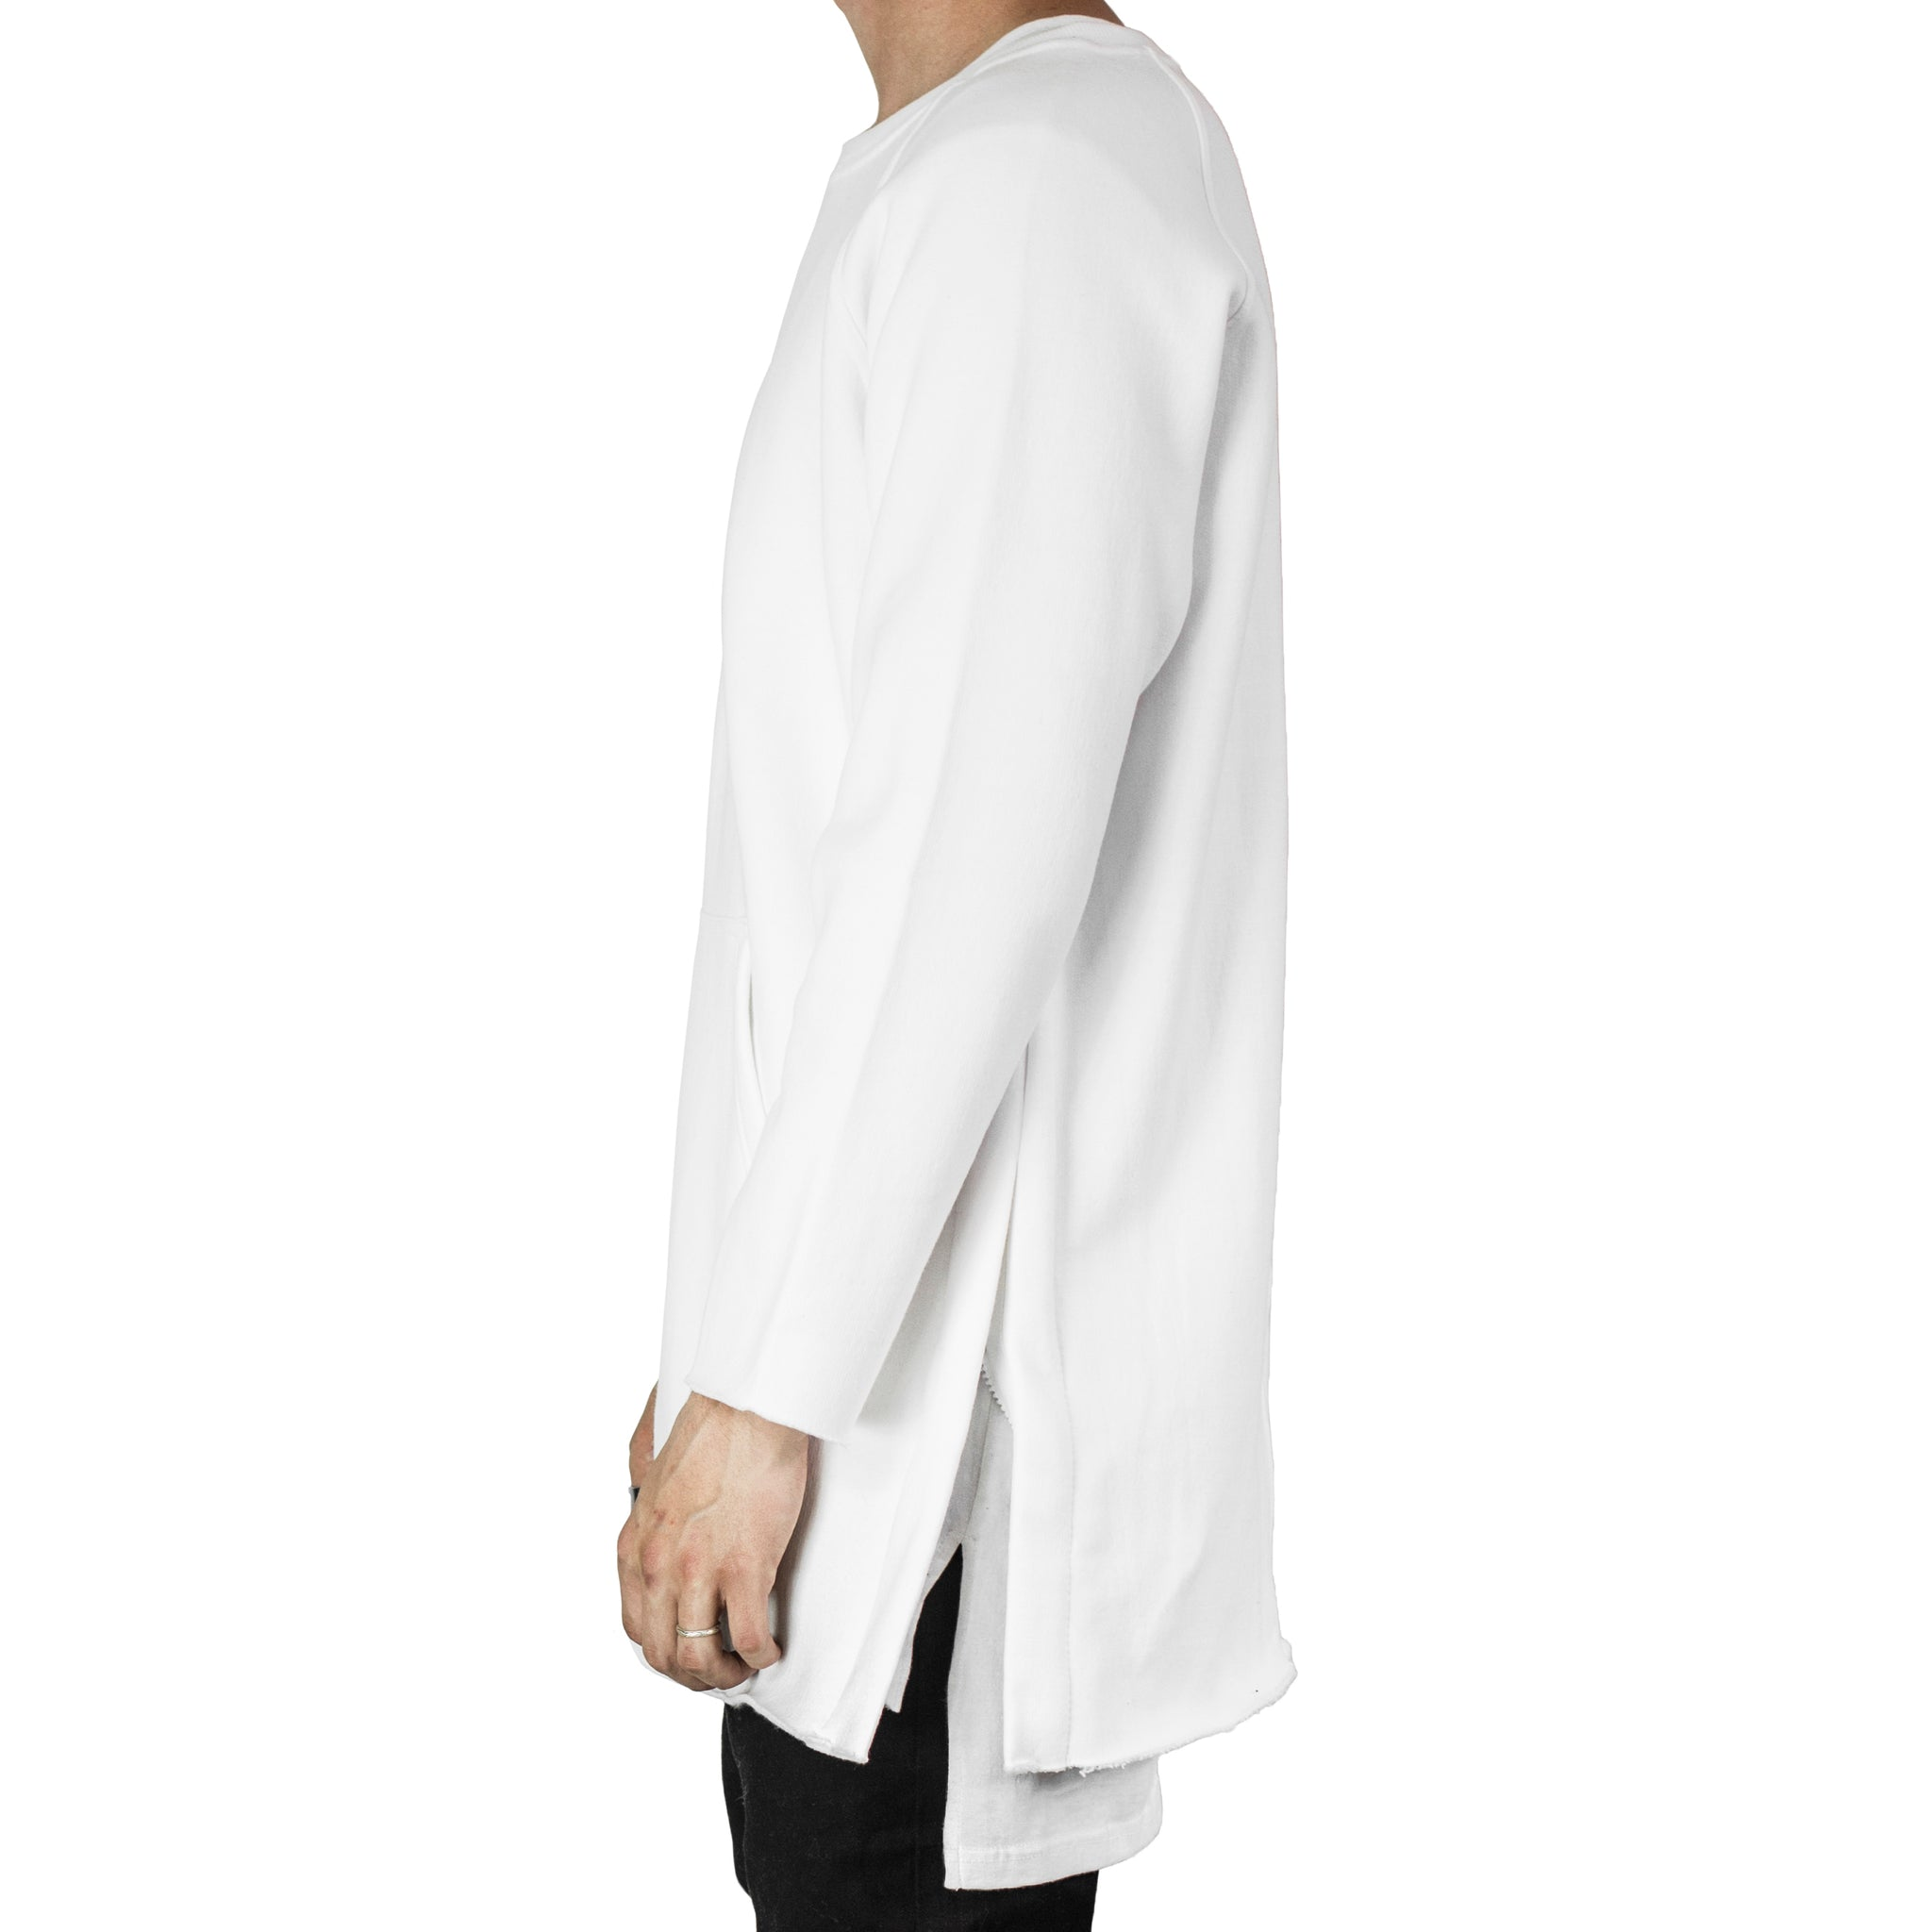 Raglan Fleece Crewneck : White